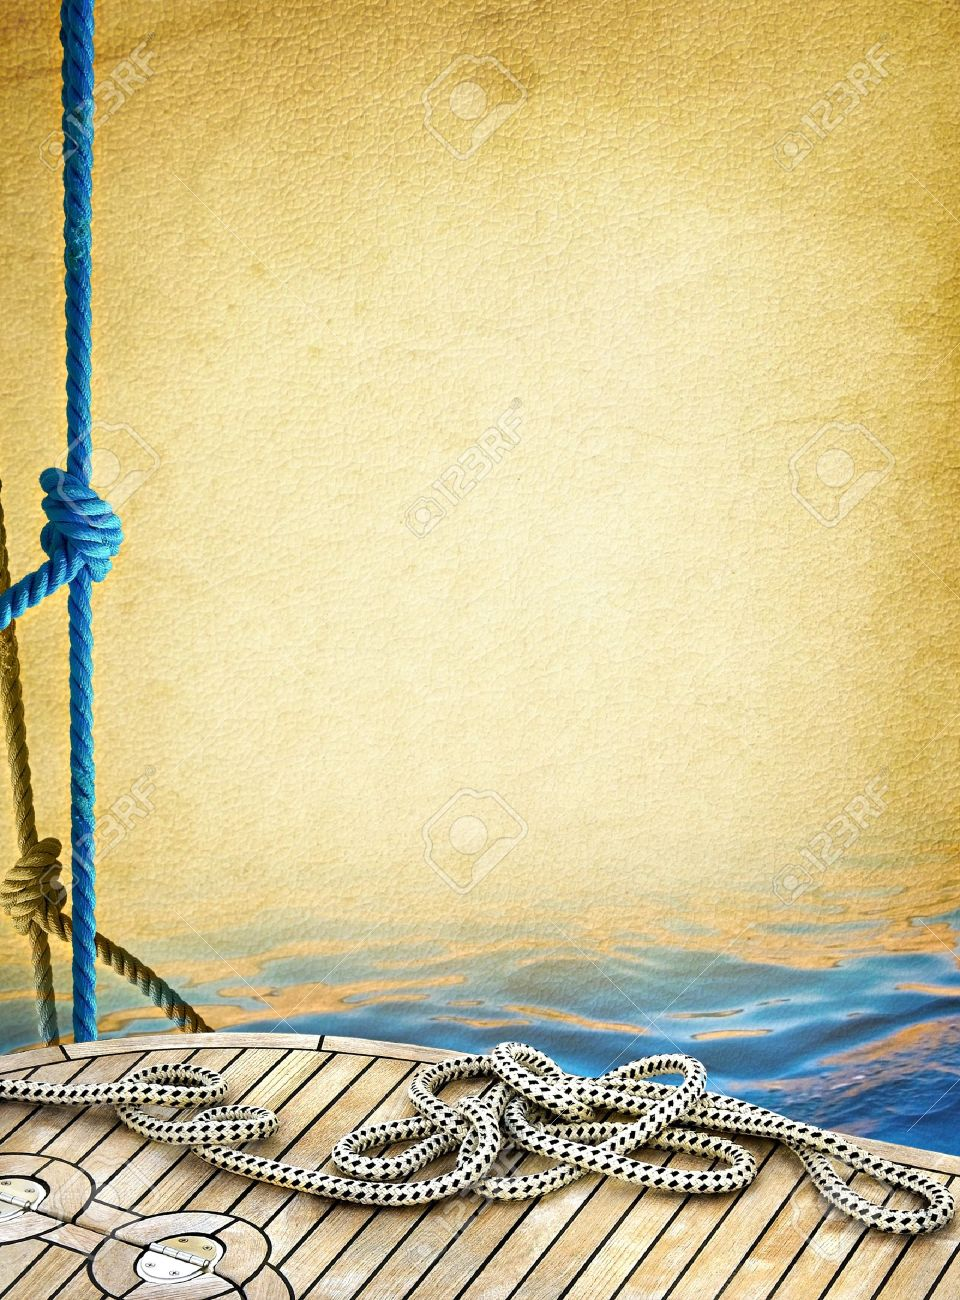 Ship rope on the old paper background  Sailboat ropes and wooden deck of the sea - vintage textured background  Marine design frame with elements of yachting Stock Photo - 13350090